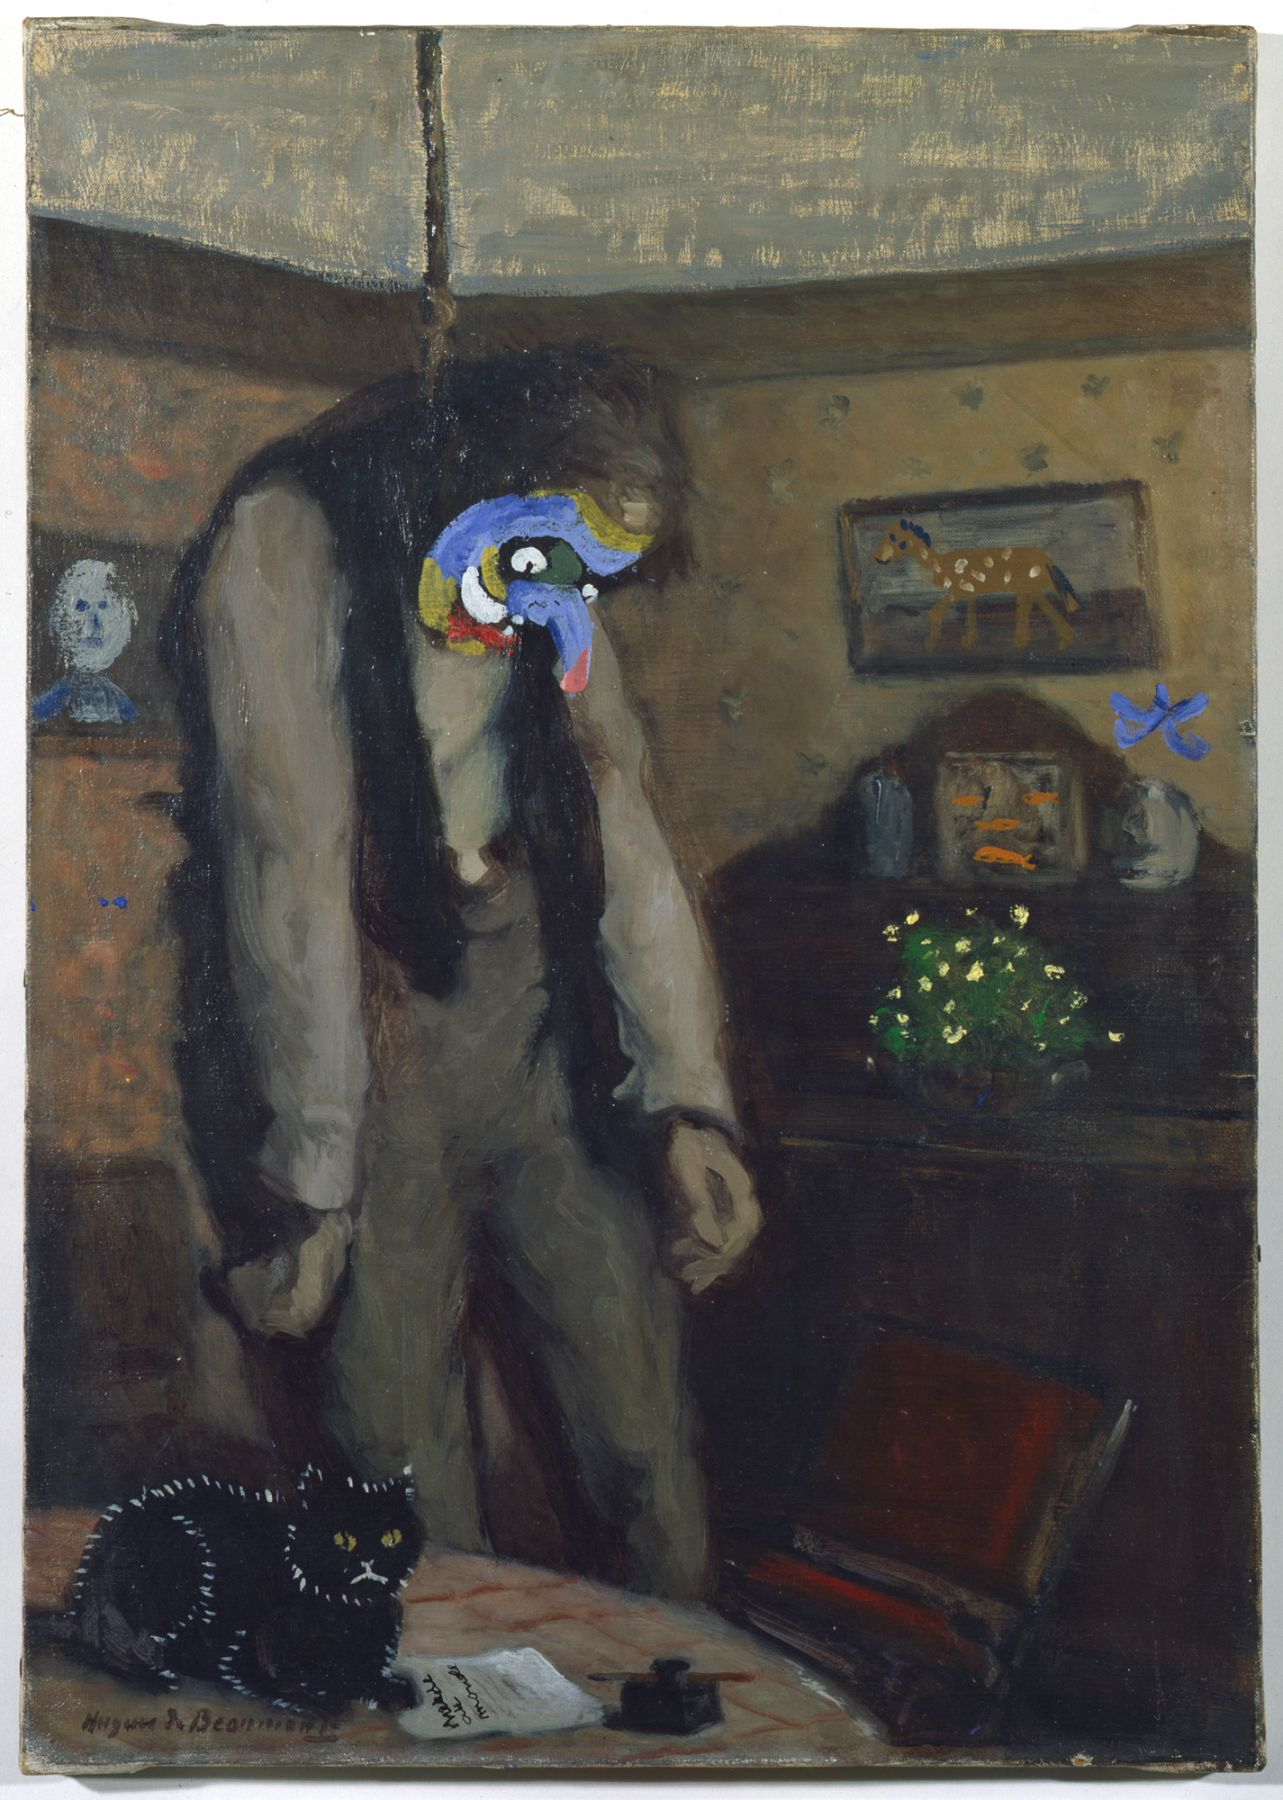 Asger Jorn, Ainsi s'Ensor (Out of this World – after Ensor)